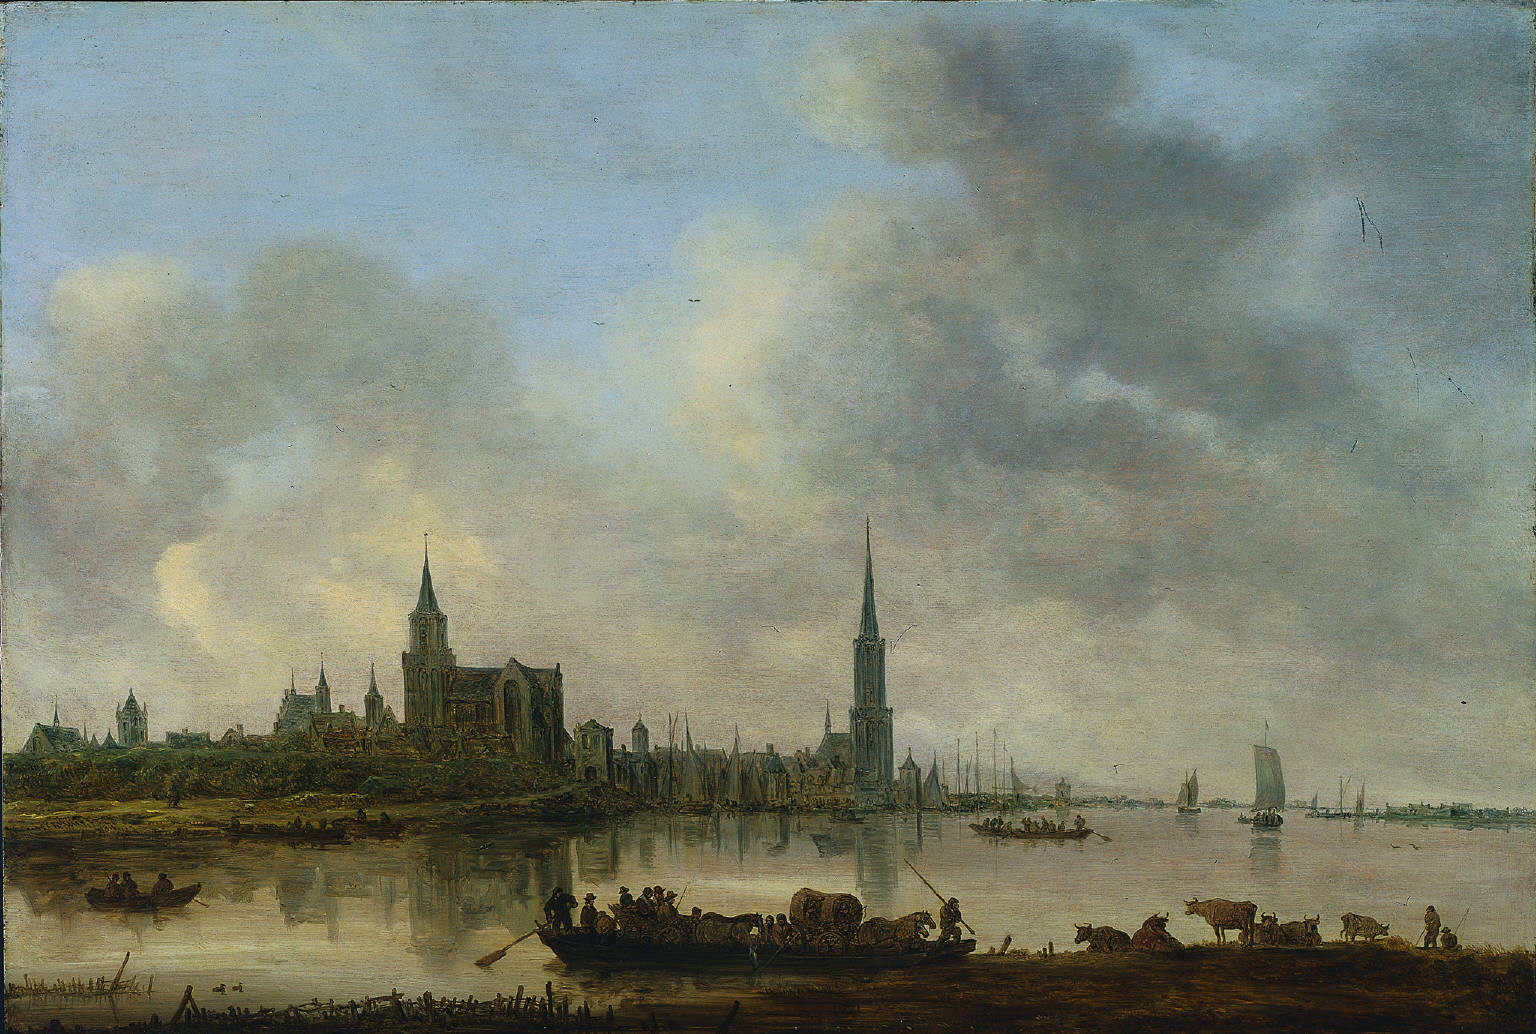 View of Emmerich, a landscape painting by Jan van Goyen, 1645, [Credit: Cleveland Museum of Art]